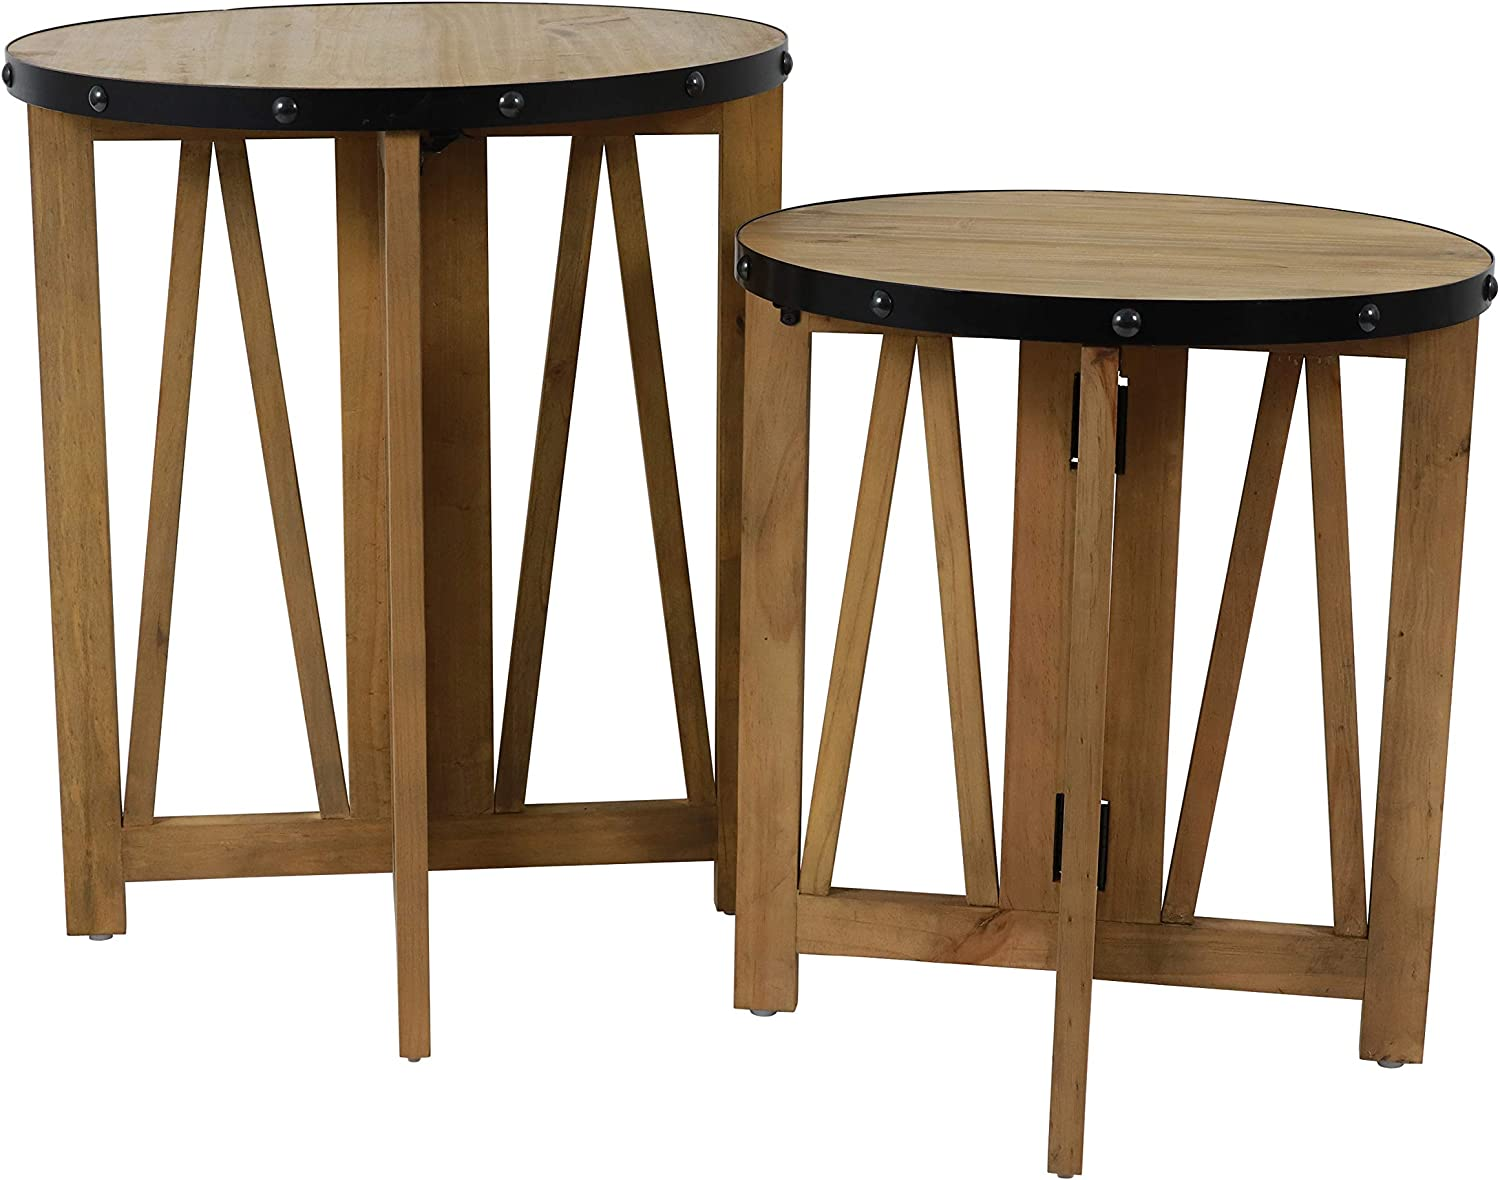 Decor Therapy Accent Side Table Set, Natural and Black